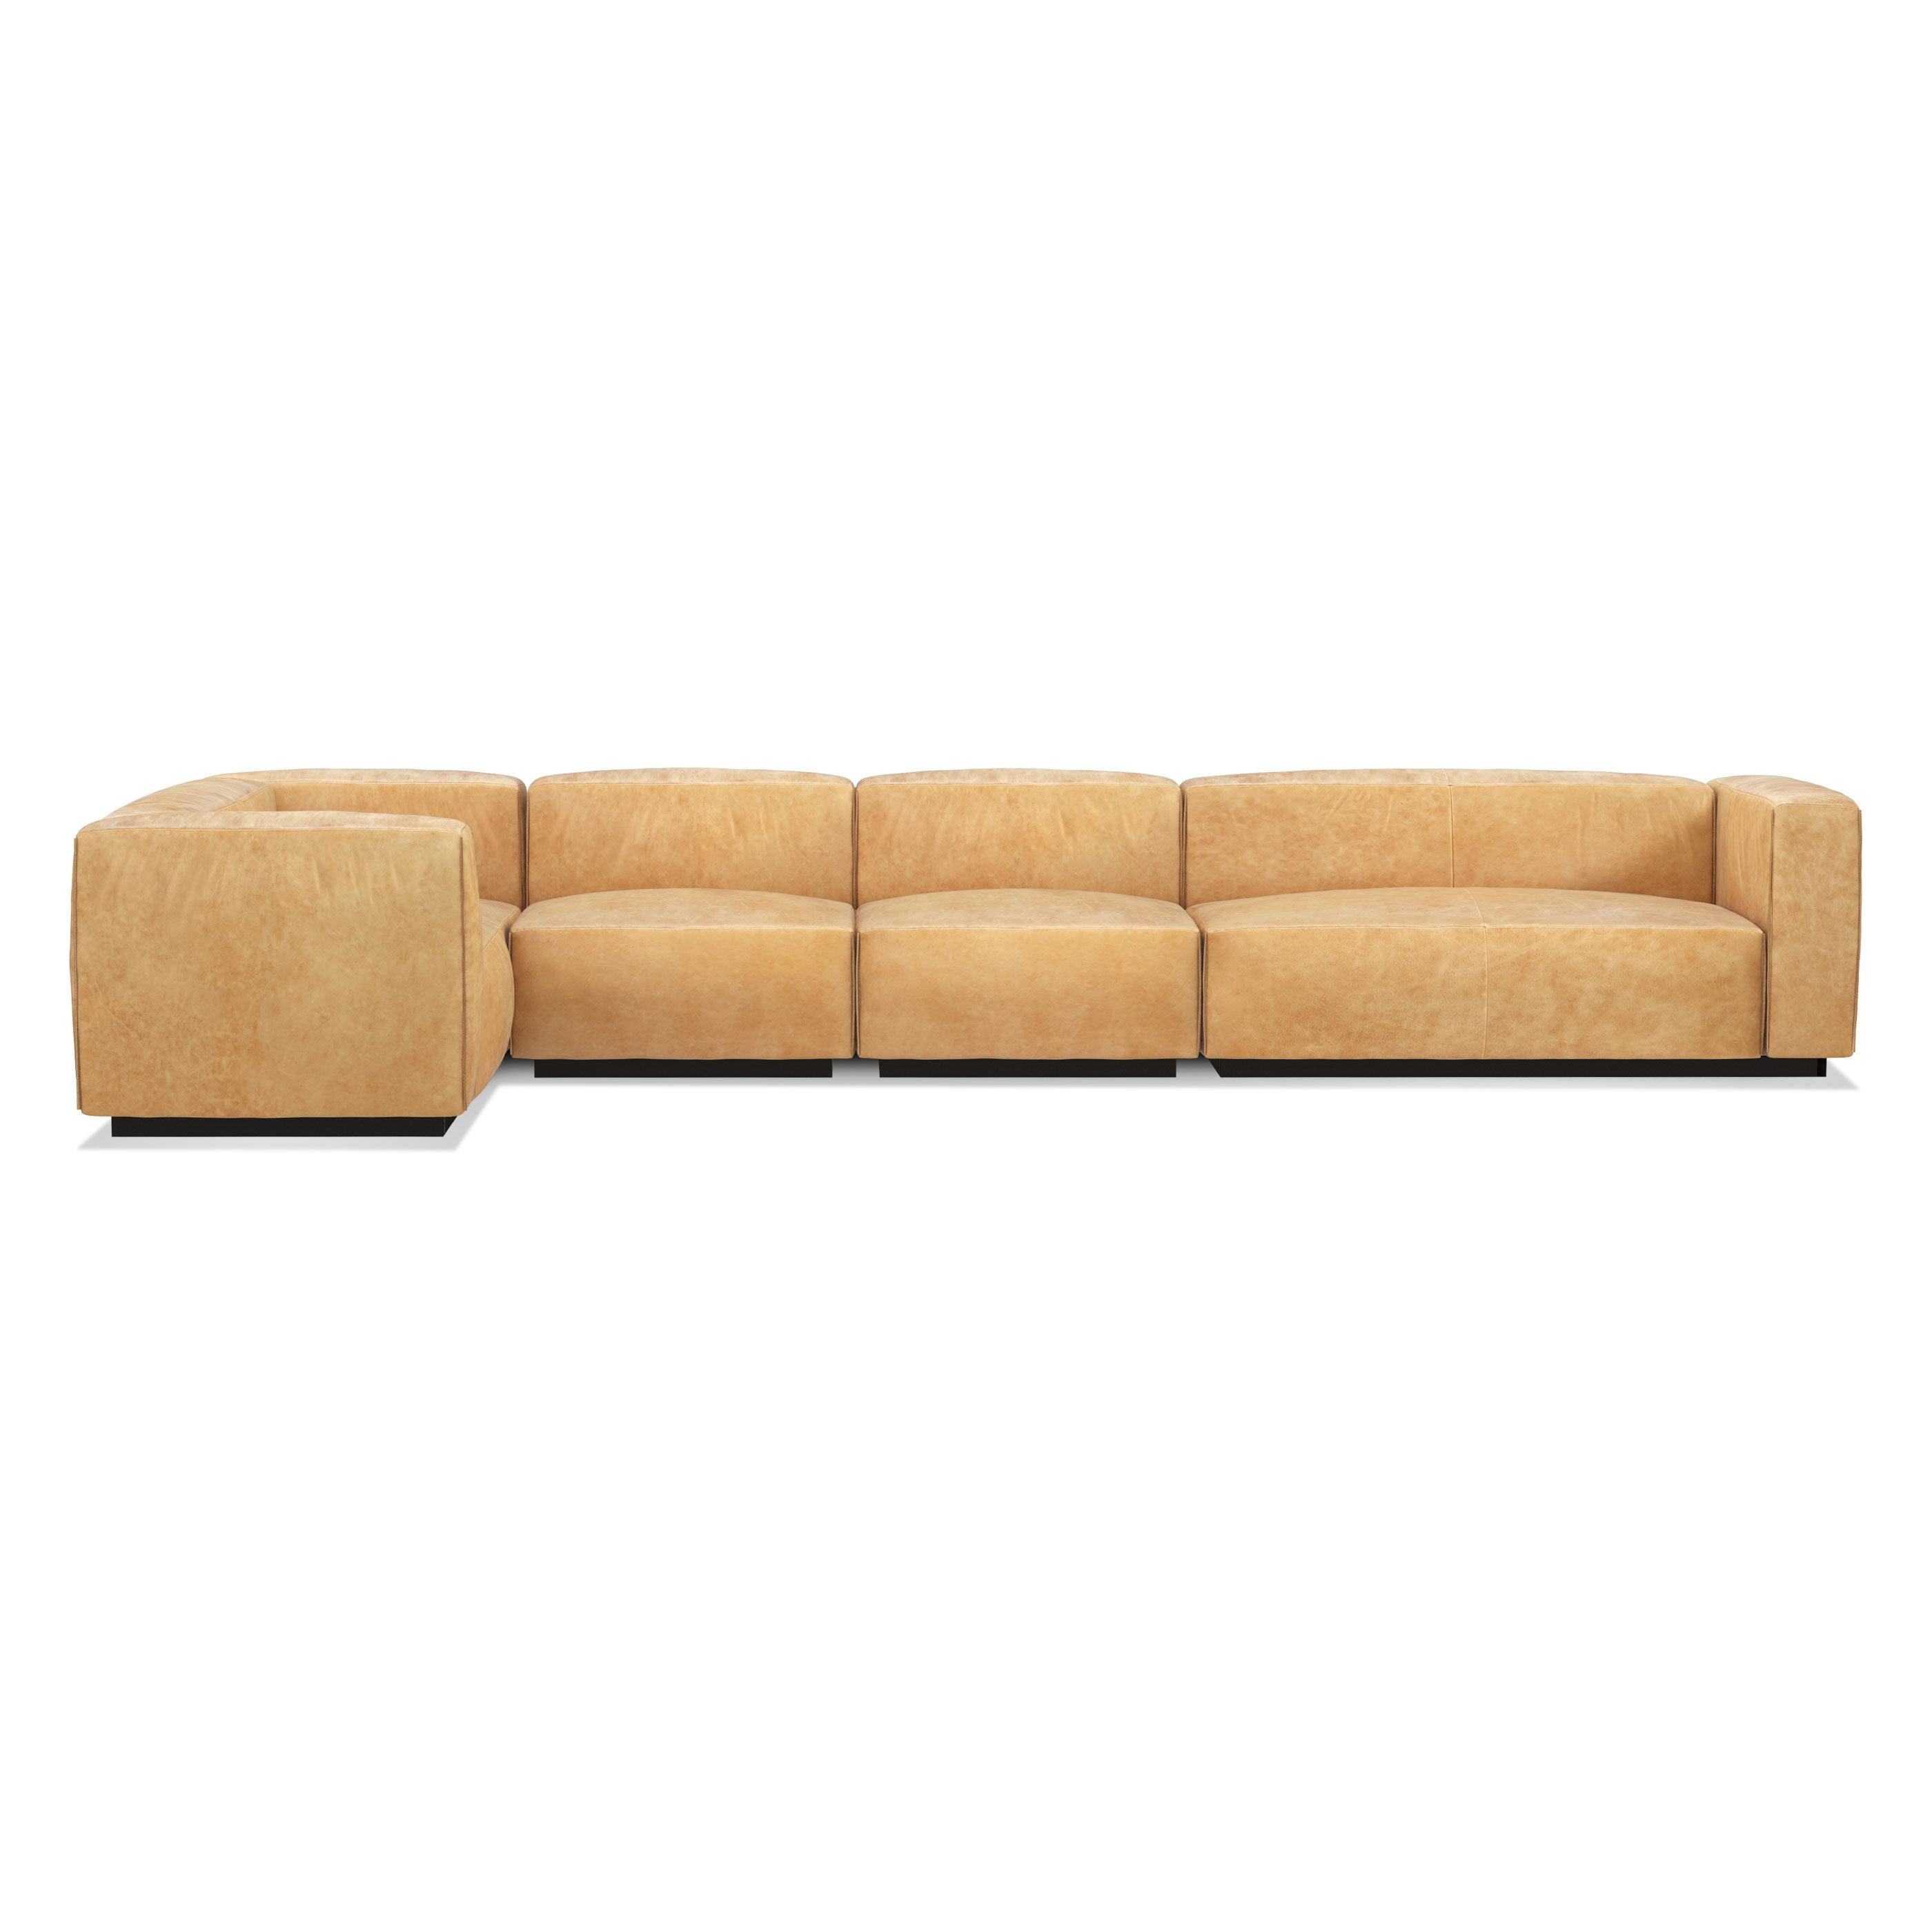 Blu Dot Cleon Large Leather Sectional Sofa – Hutch - Modern ...